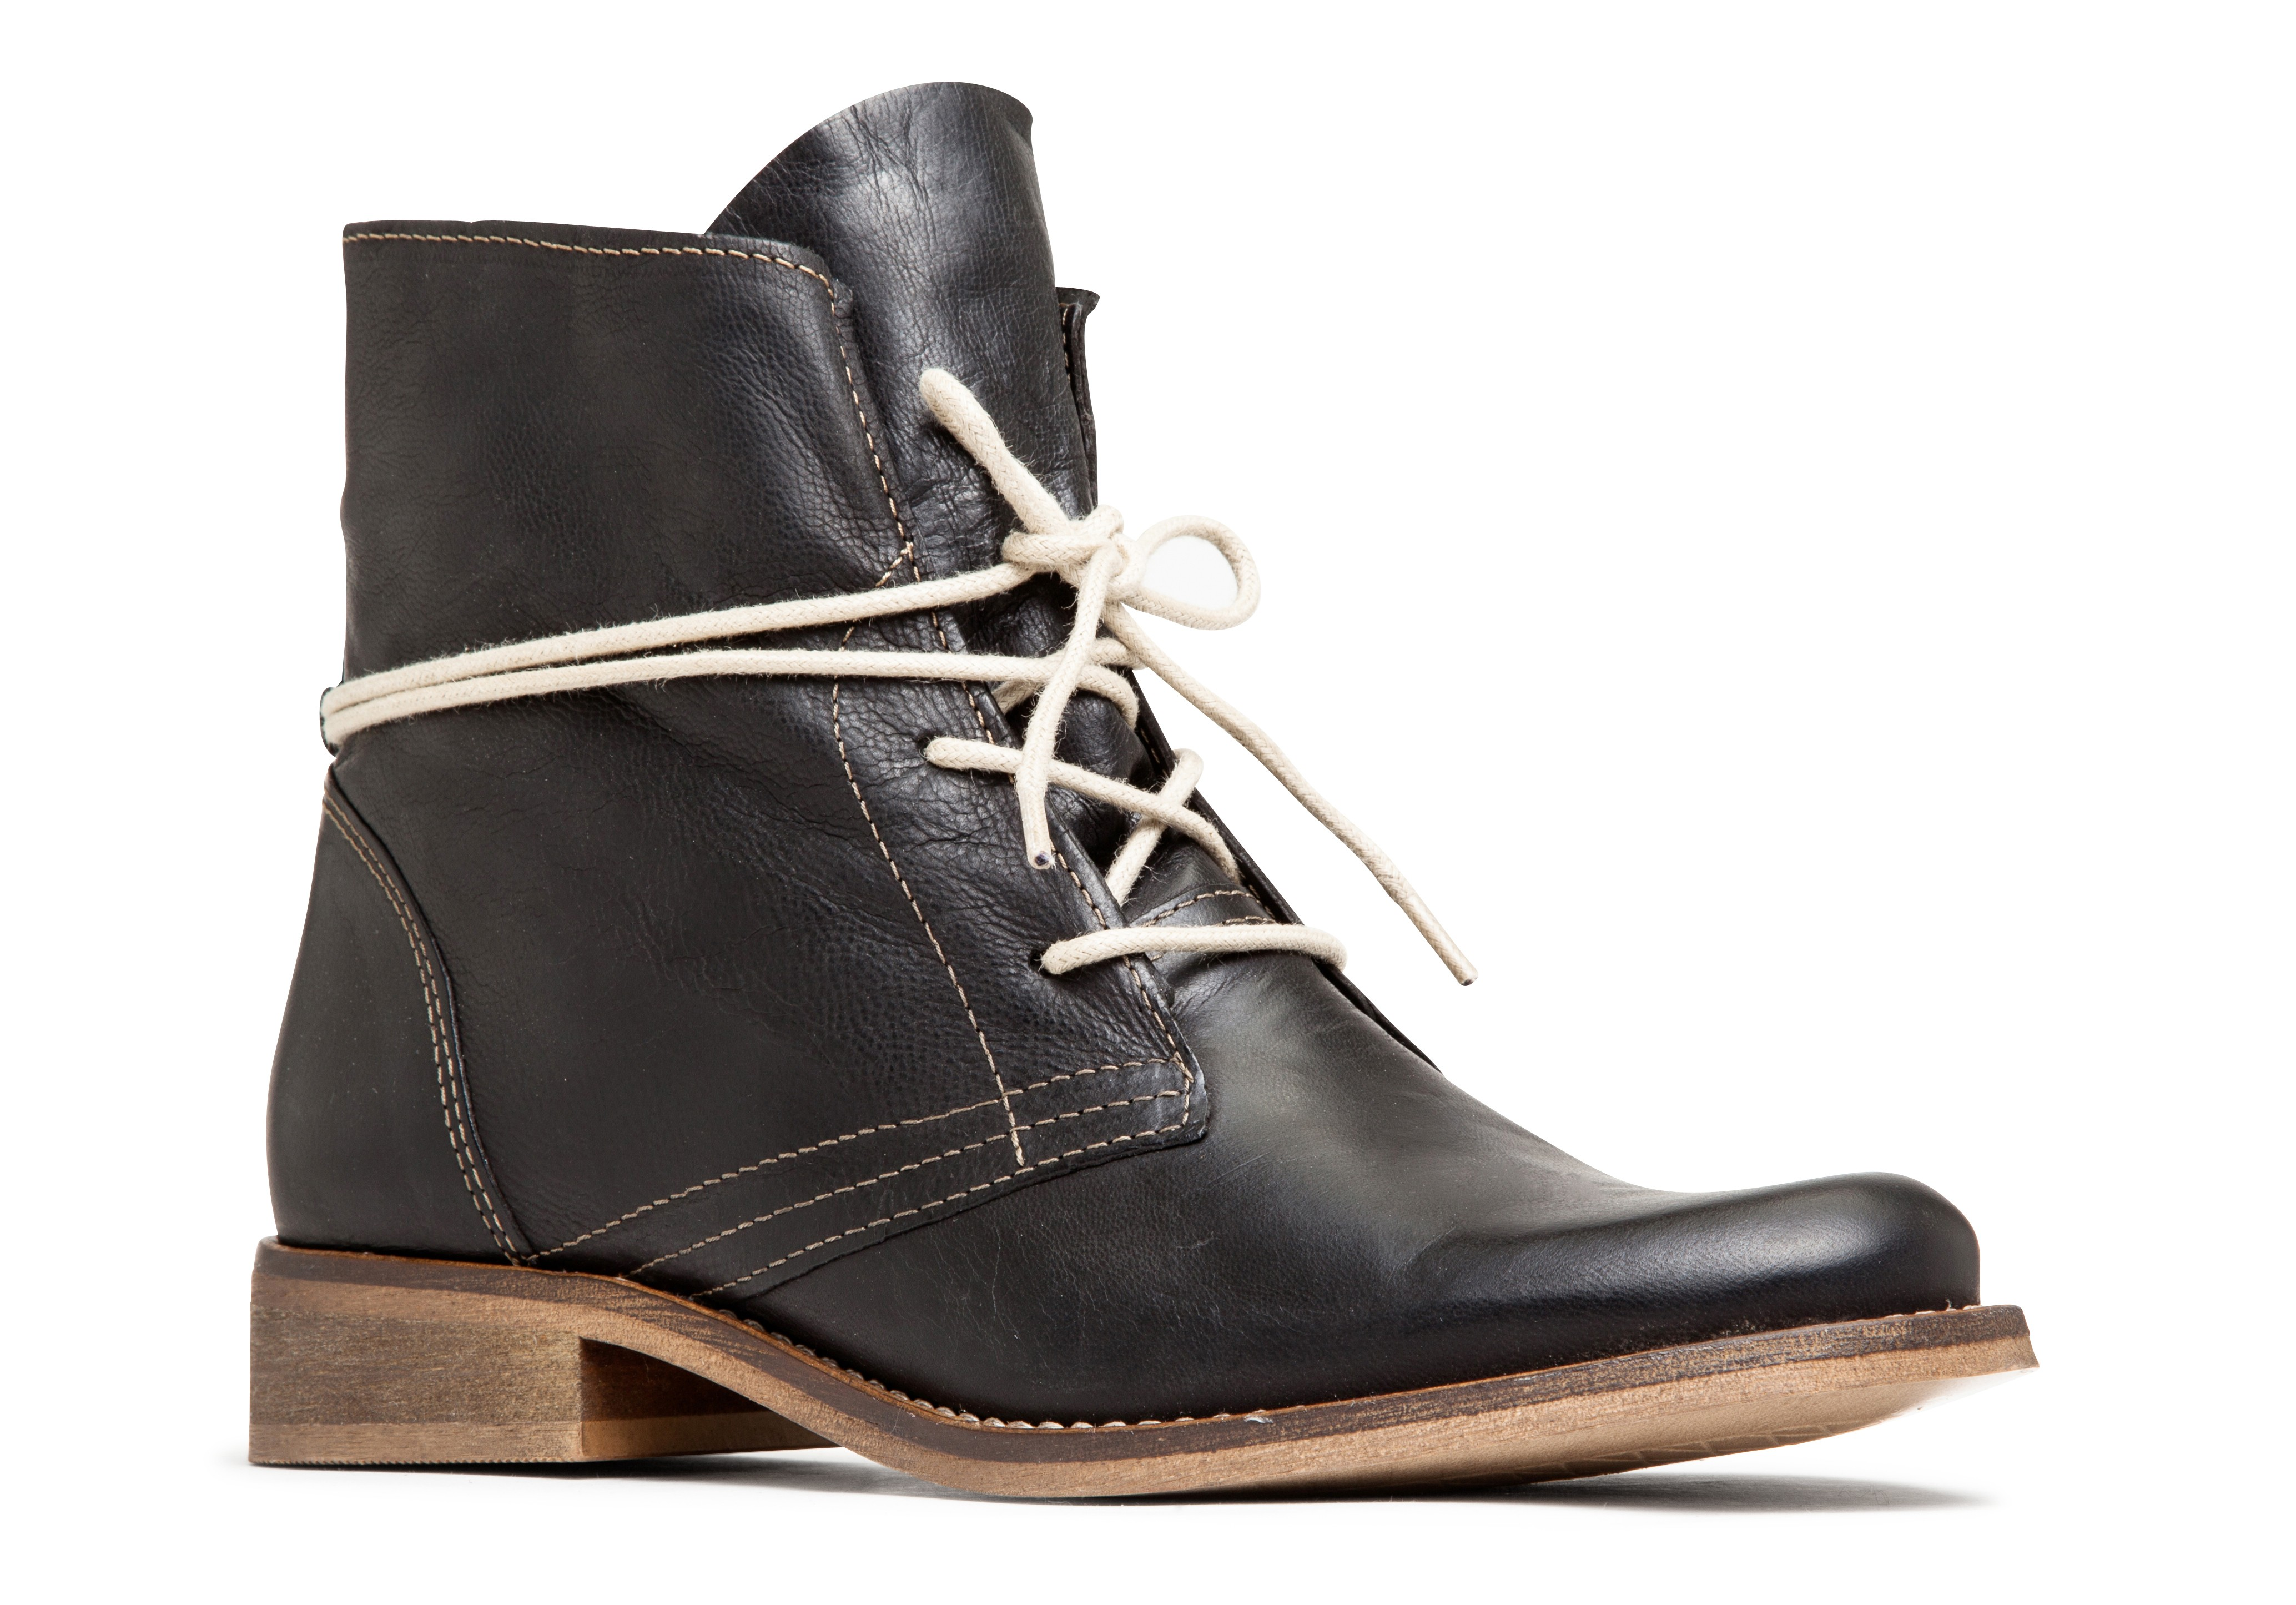 The Shoe Edition: Mi Piaci & Overland Present Autumn/Winter 2015